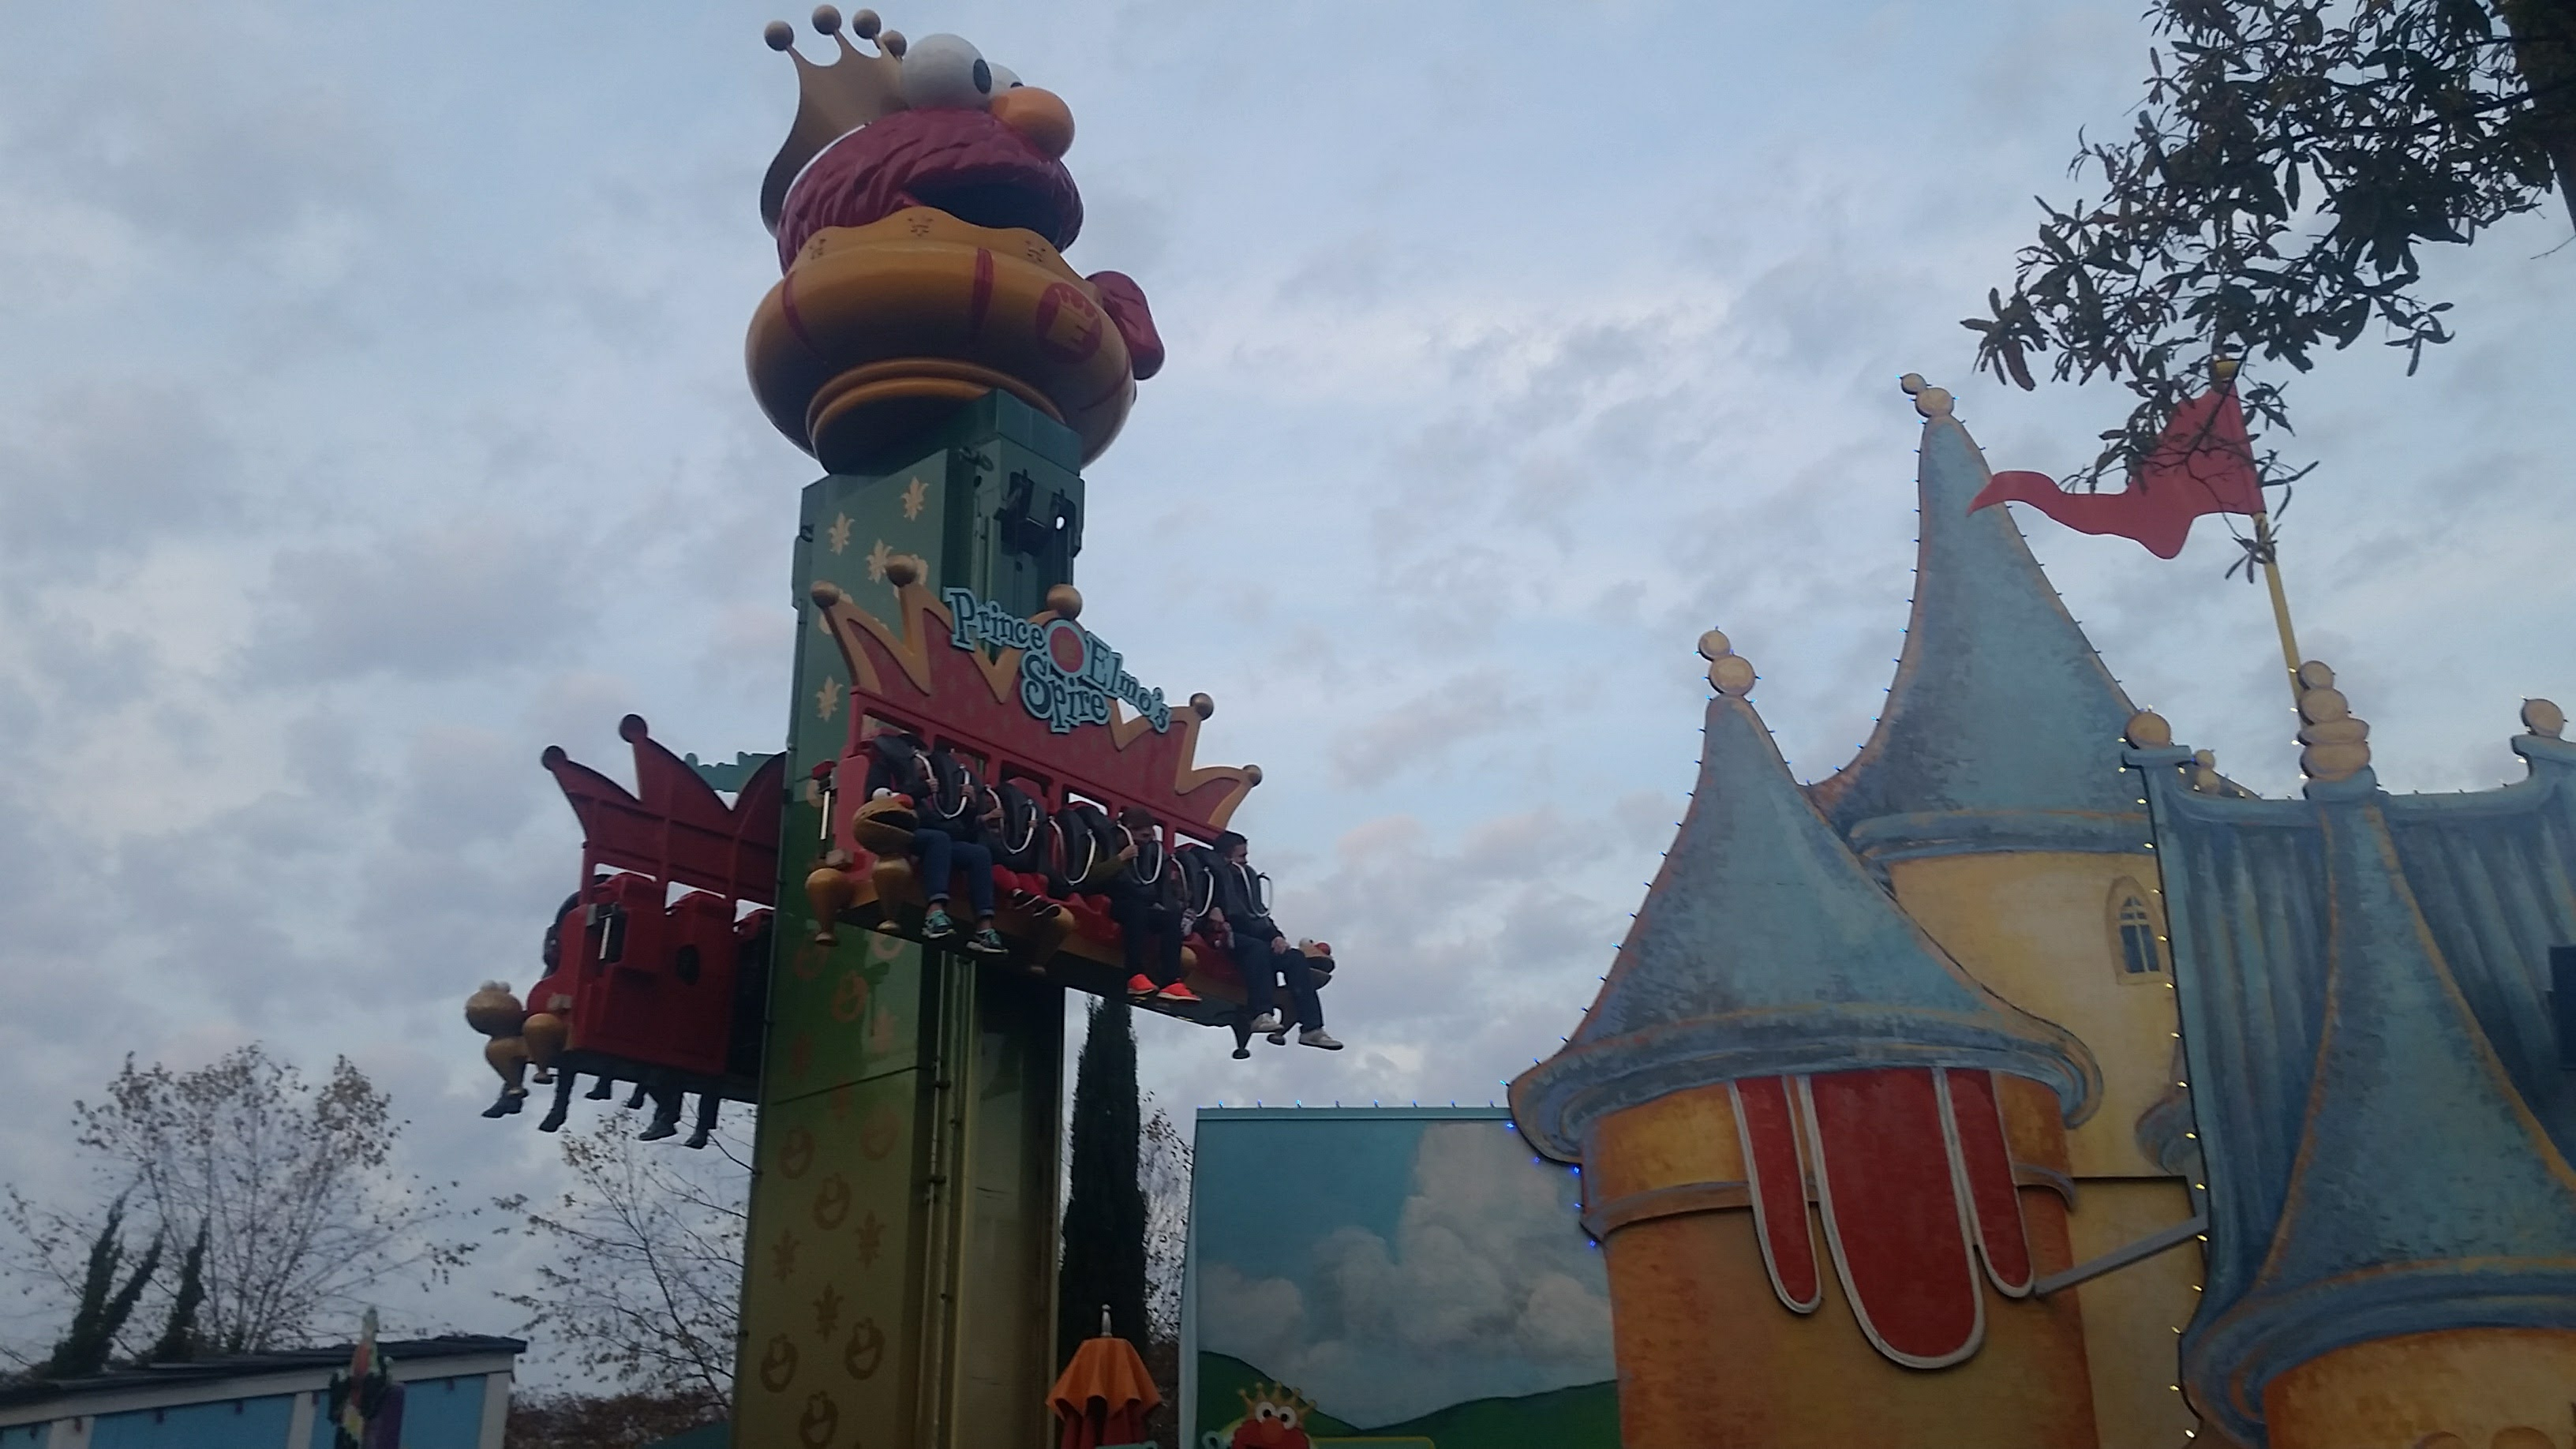 More family rides await you at the Sesame Street Forest of Fun